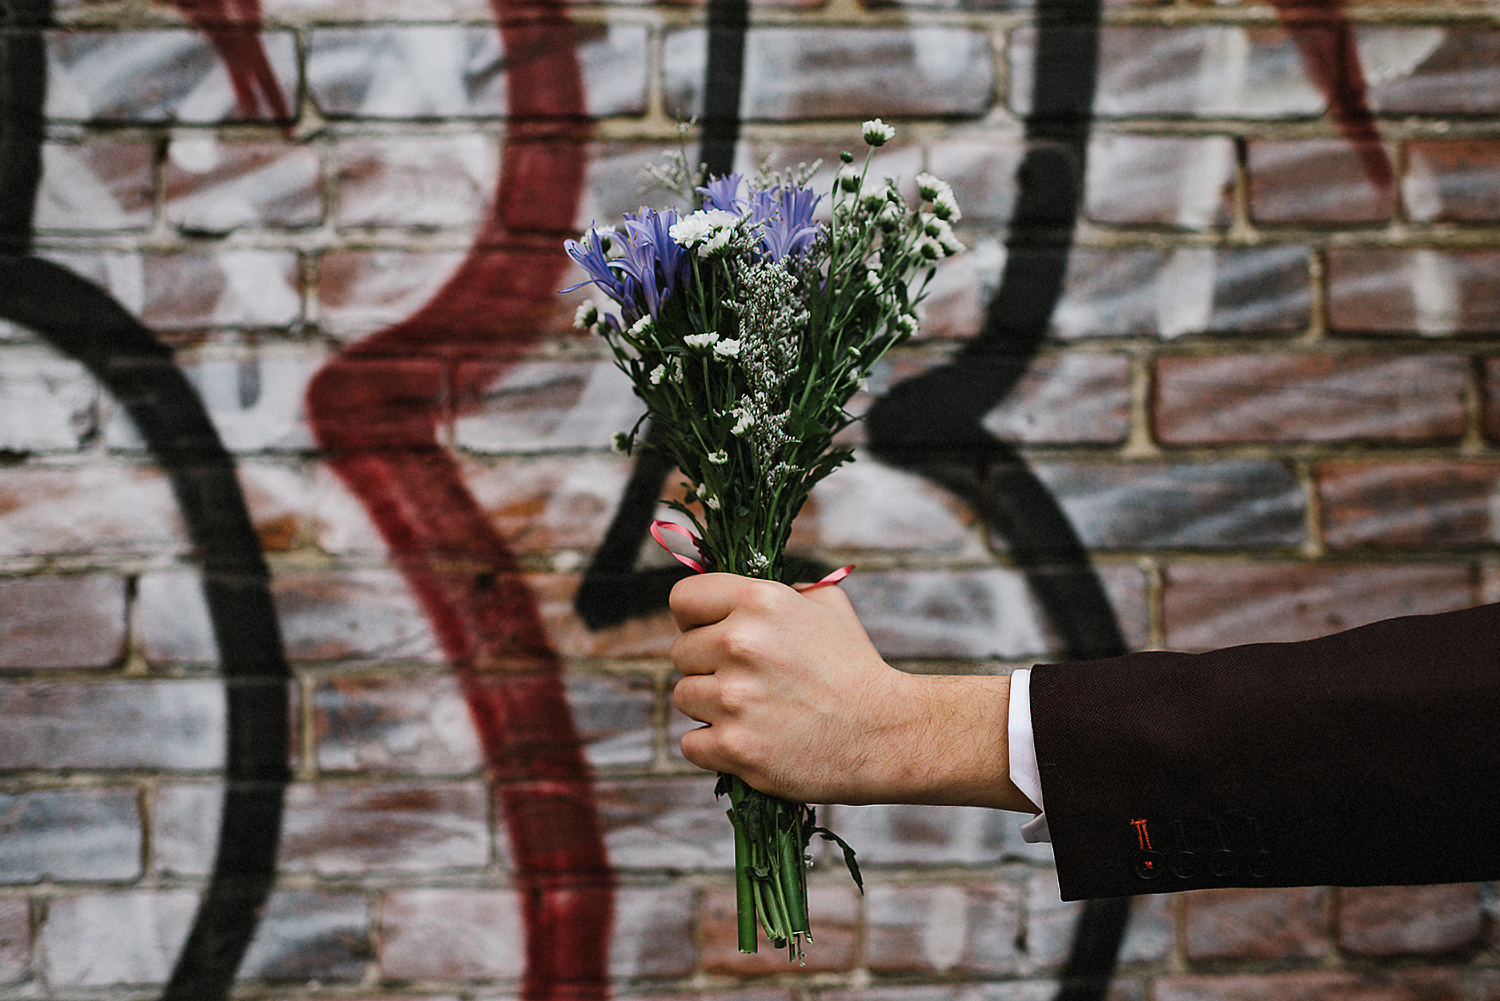 16-Toronto-City-Hall-Fall-Elopement-Indie-Altervatice-Urban-City-Bride-and-Groom_Fall-Colours-Riverdale-Downtown-Toronto-Best-Wedding-Photographers-Groom-Vintage-Suit-Candid-Portrait-Bride-and-Groom-Graffiti-Wall-Bouquet-Detail-Groom.JPG